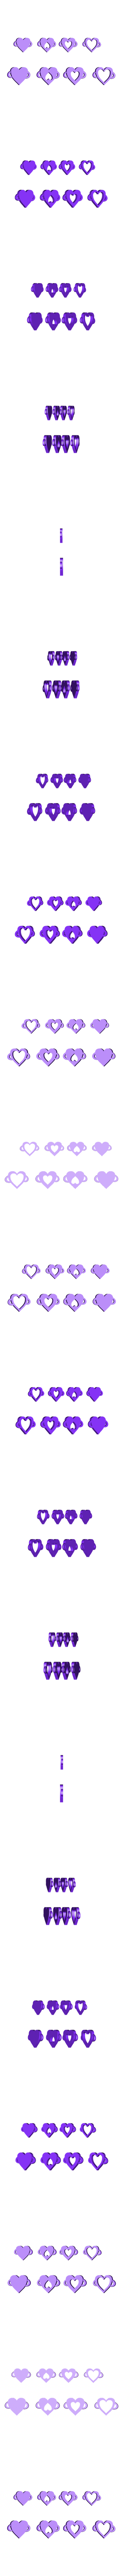 coeurs perle 2.stl Download STL file TWO JEWELERY • 3D printing object, catf3d